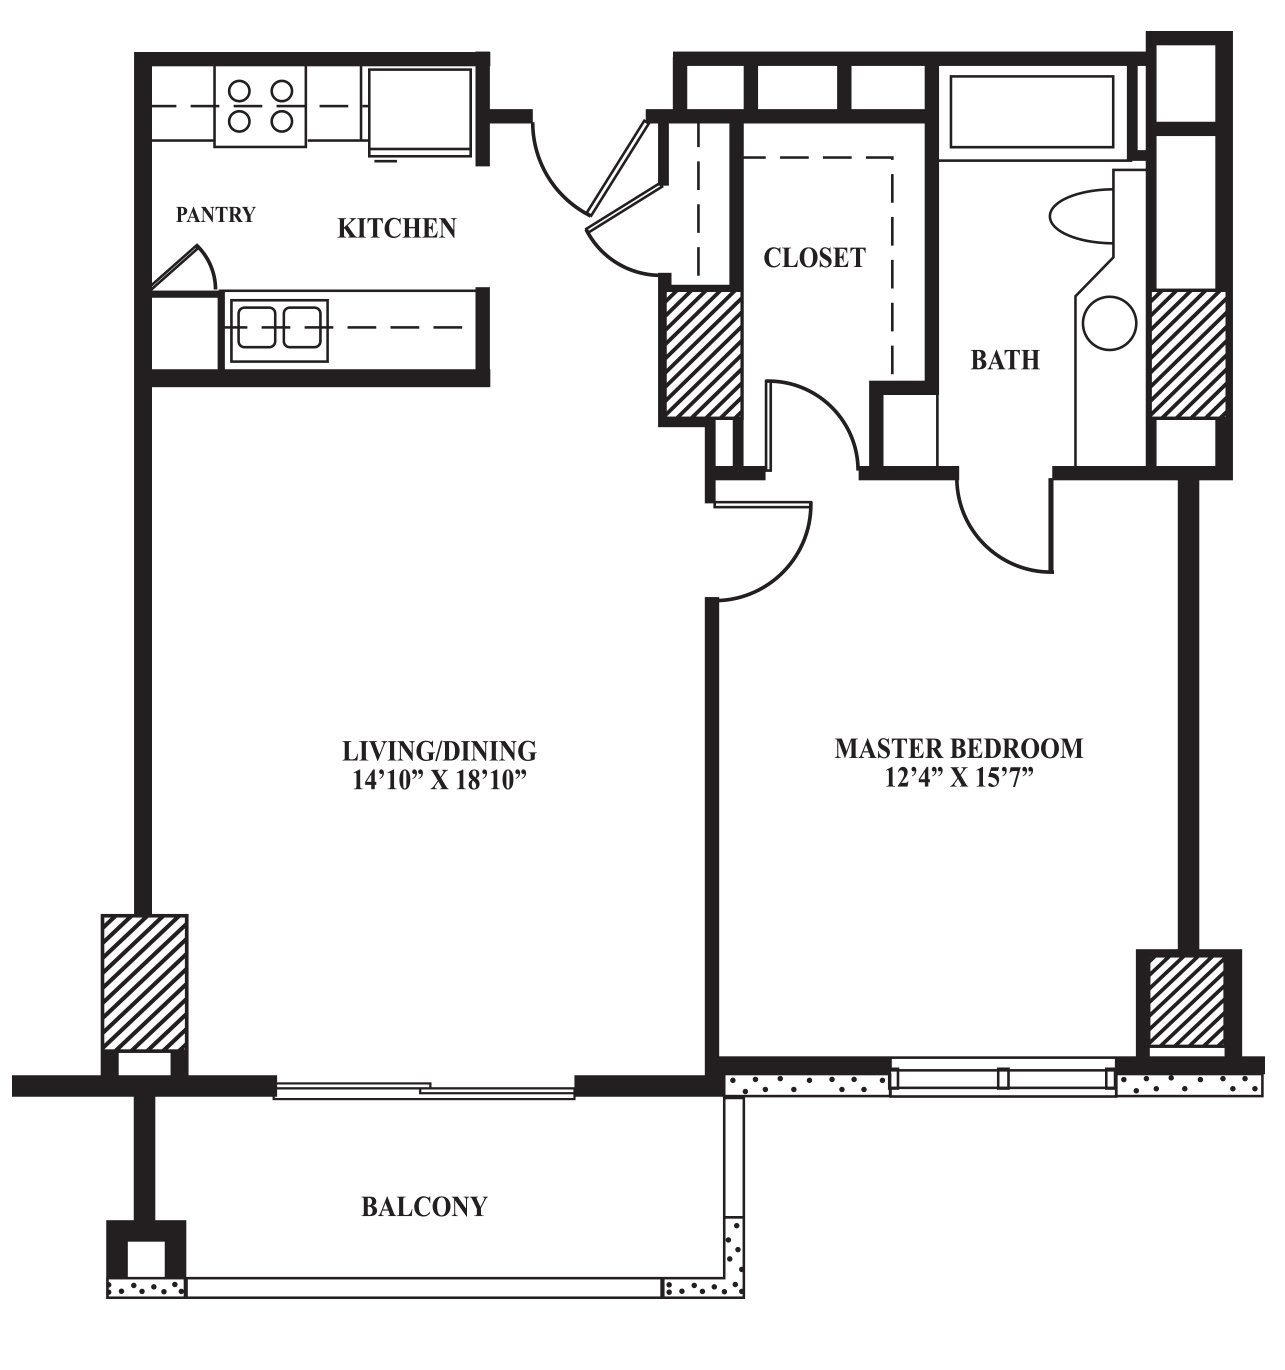 Floor Plan B 742 Sq Ft additionally Master Bedroom Deck Plans moreover Aia Mid Century Post Beam With Pool also In Detail additionally Meble Do łazienki Klasyczne Galeria 01. on master bathroom floor plans luxury